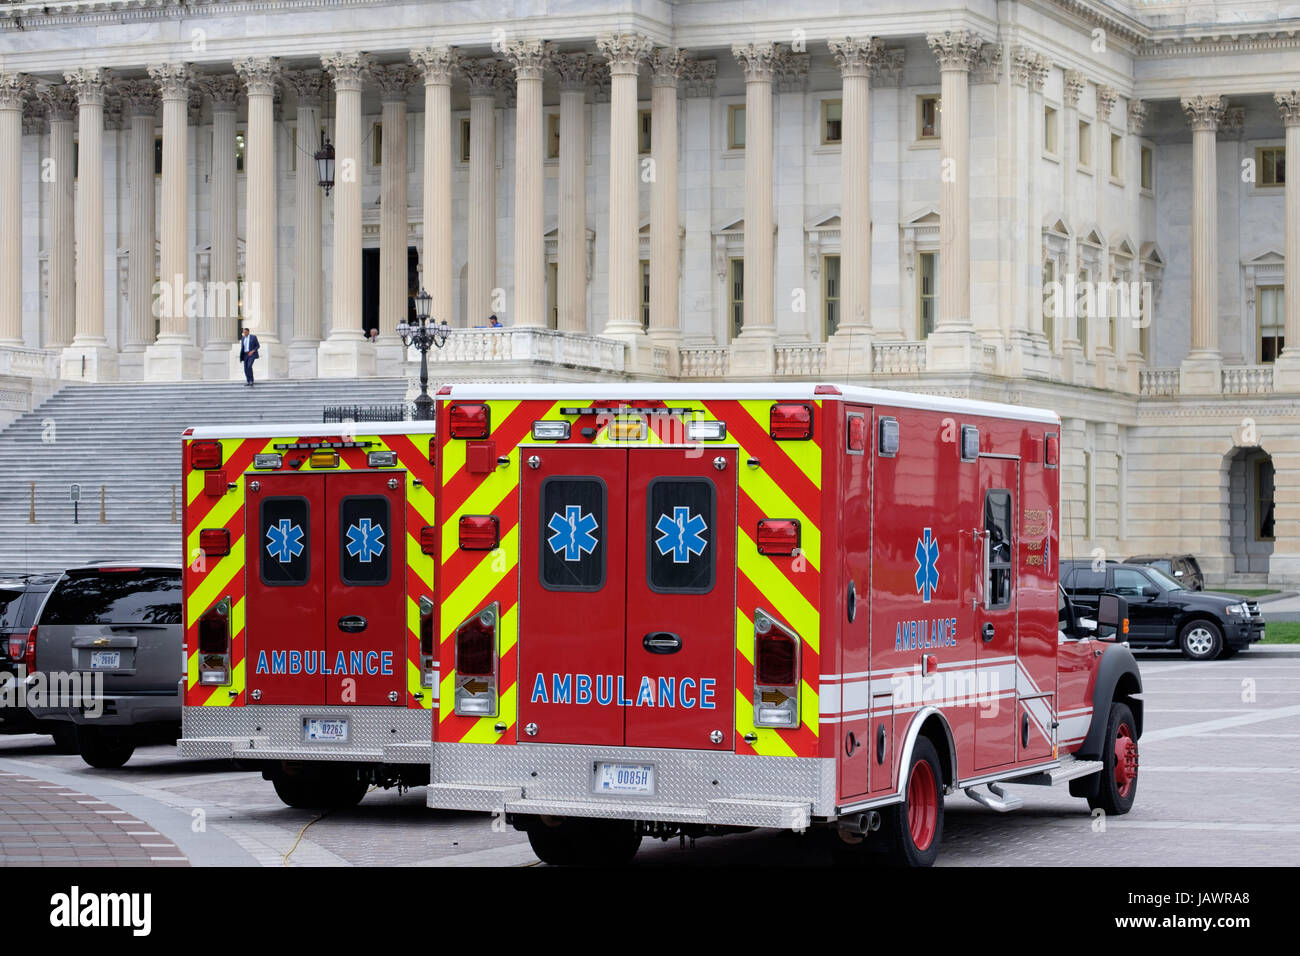 Ambulances in front of the U.S. Capitol building - Stock Image